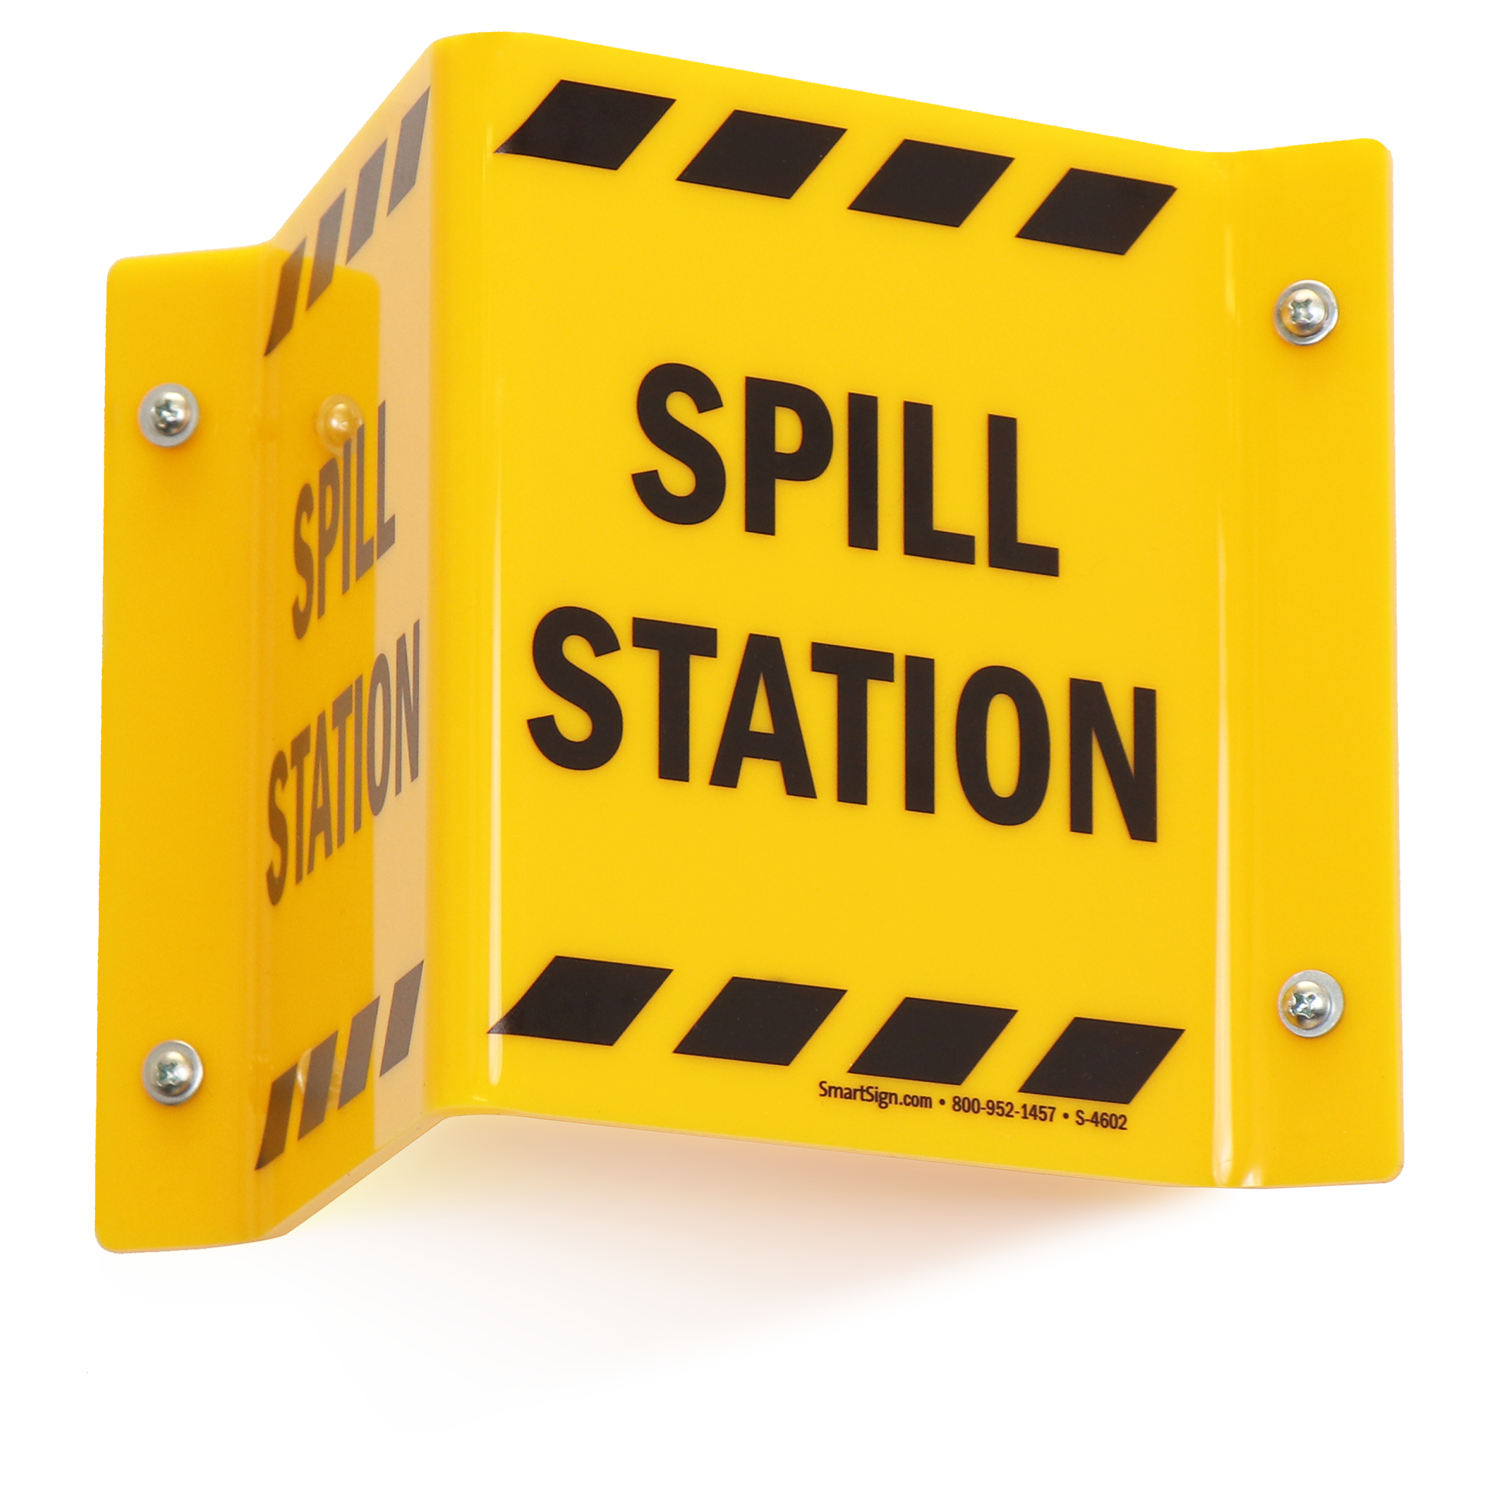 Spill Kit Signs Spill Kit Station Signs